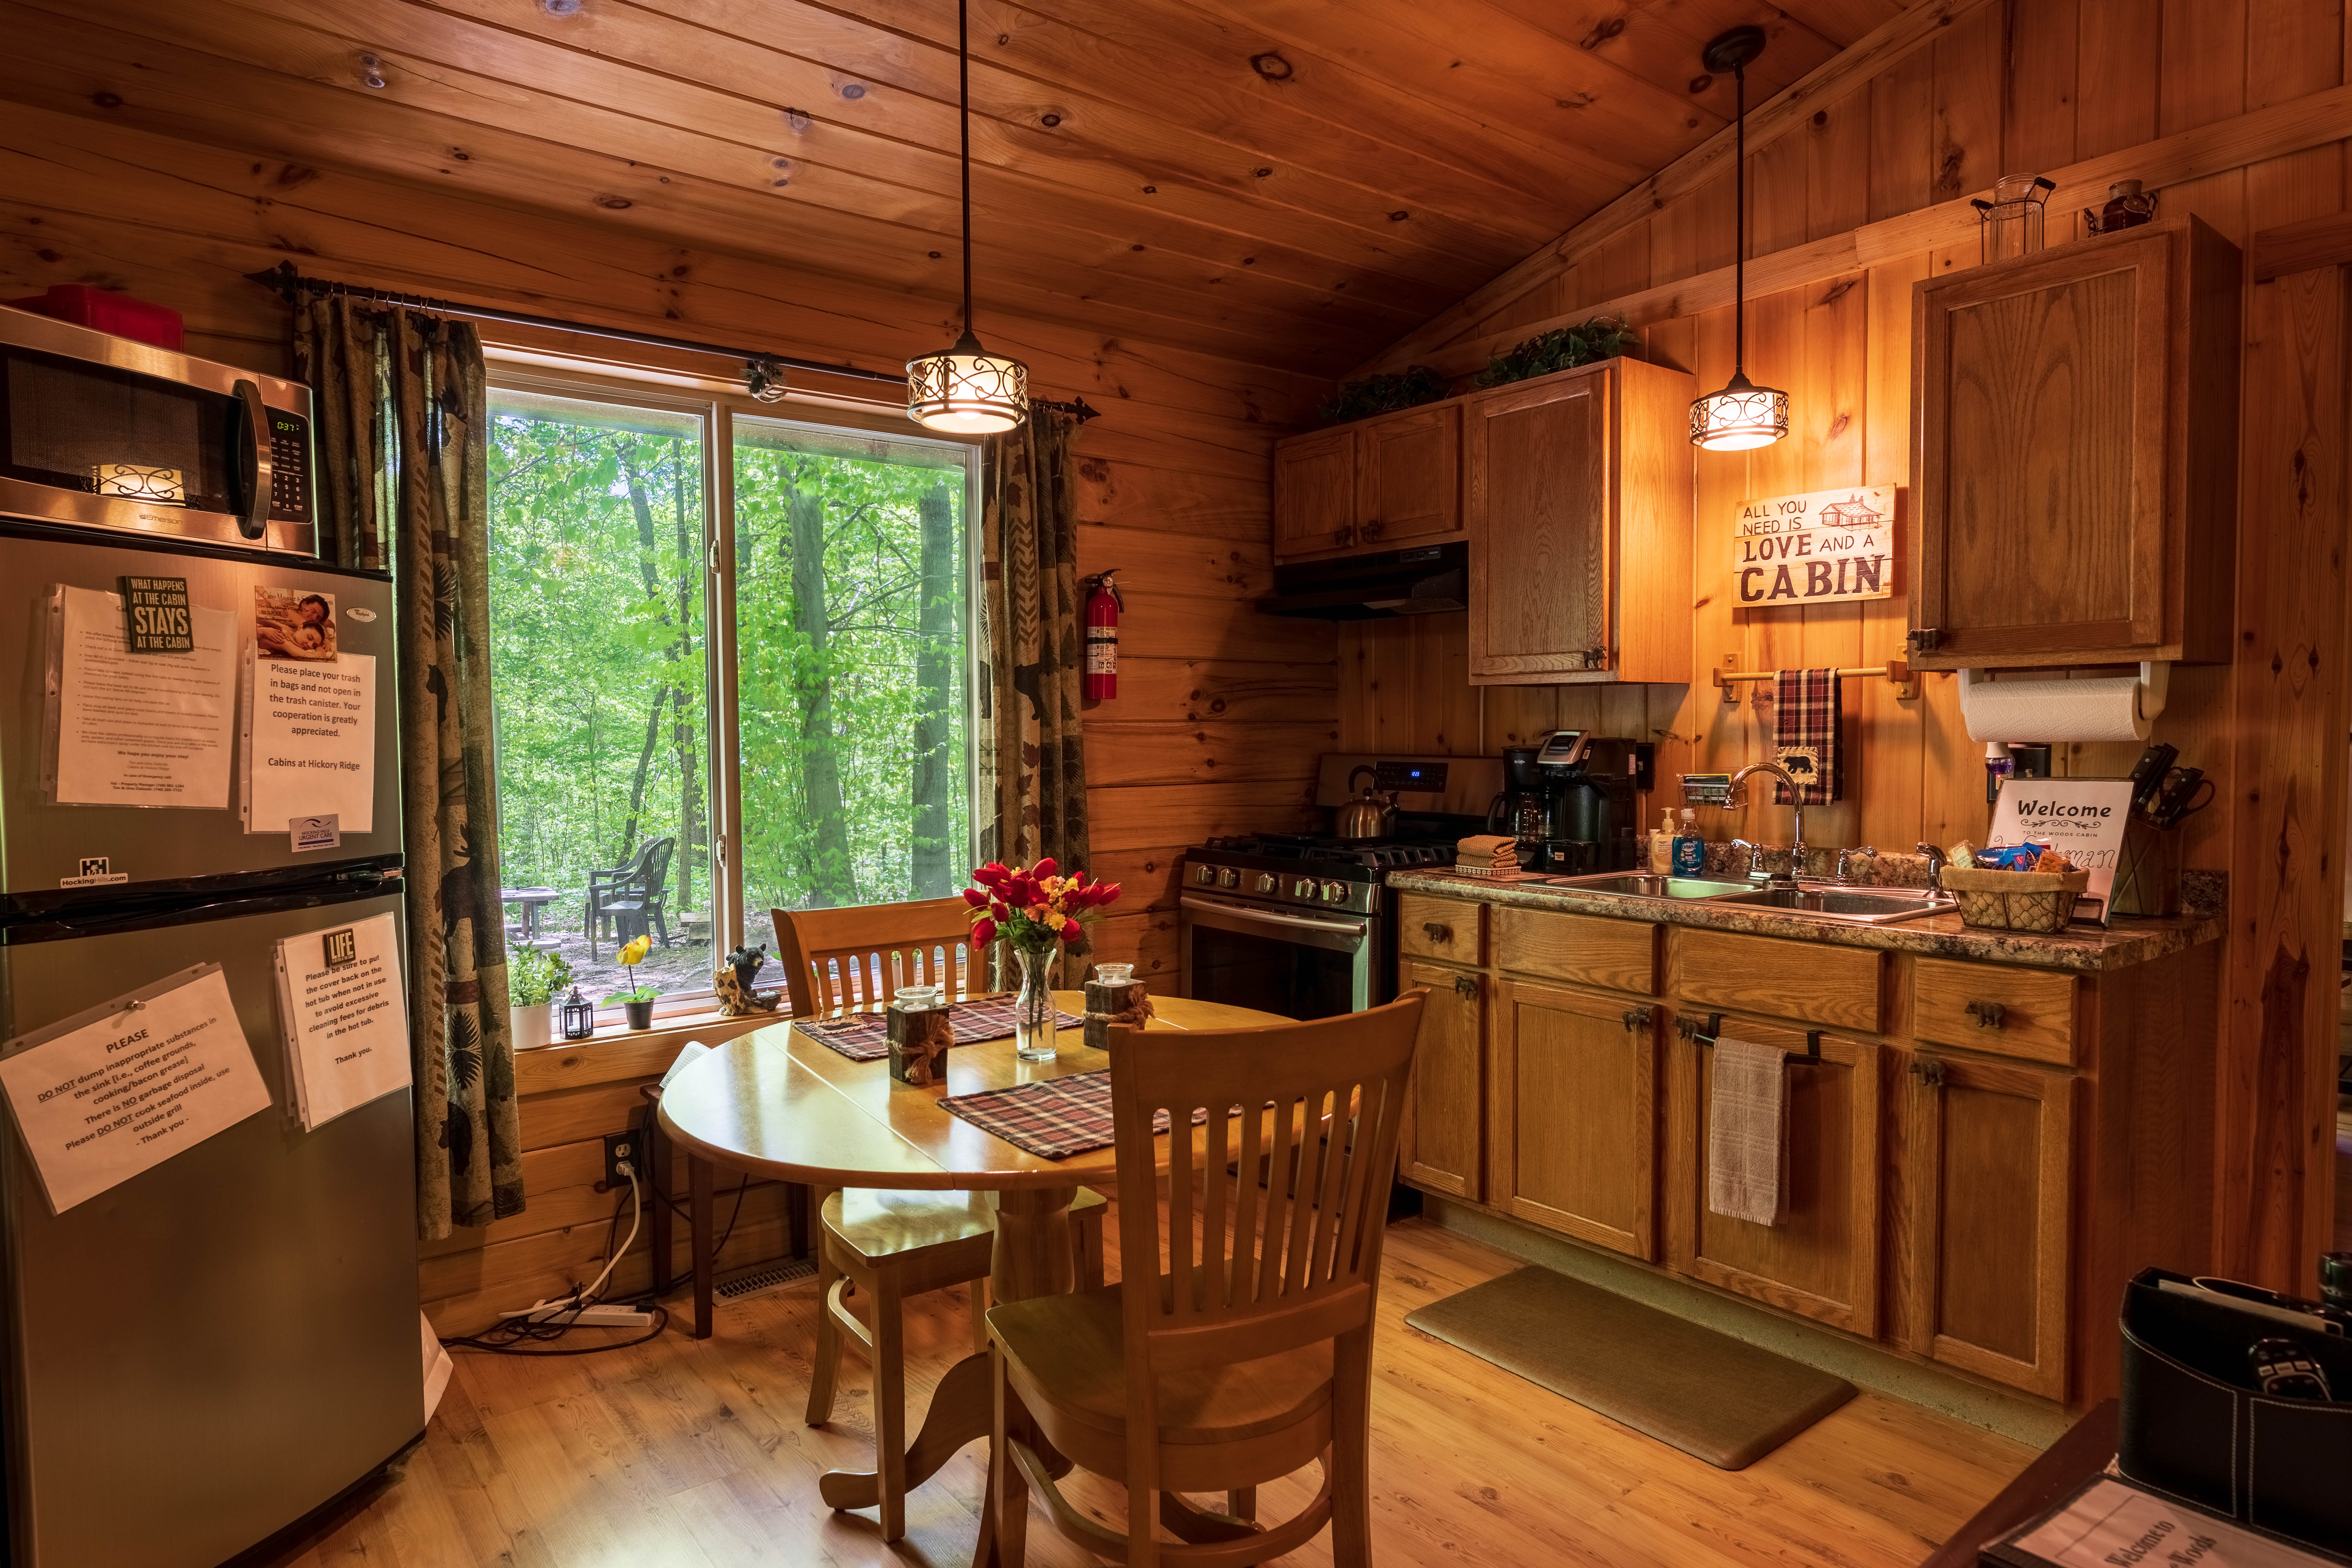 Photo 1407_10655.jpg - The cabin offers an open concept with the dining table and 2 chairs in the kitchen area.